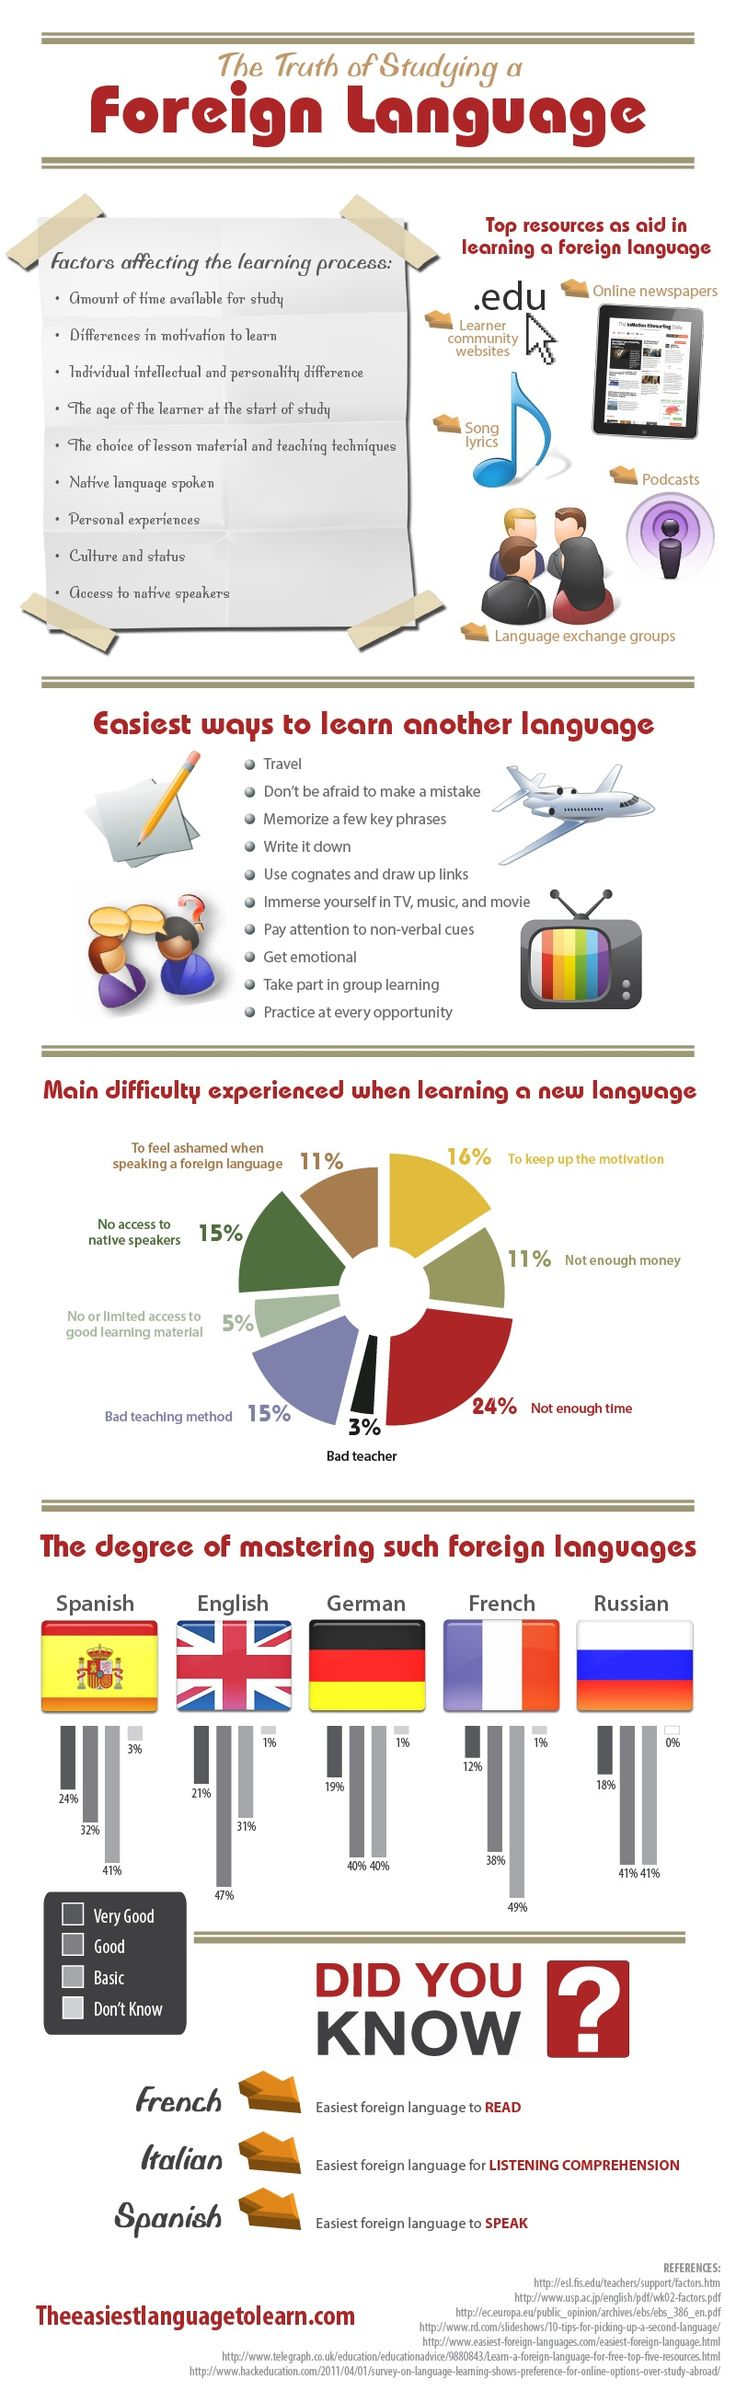 The Truth of Studying a Foreign Language